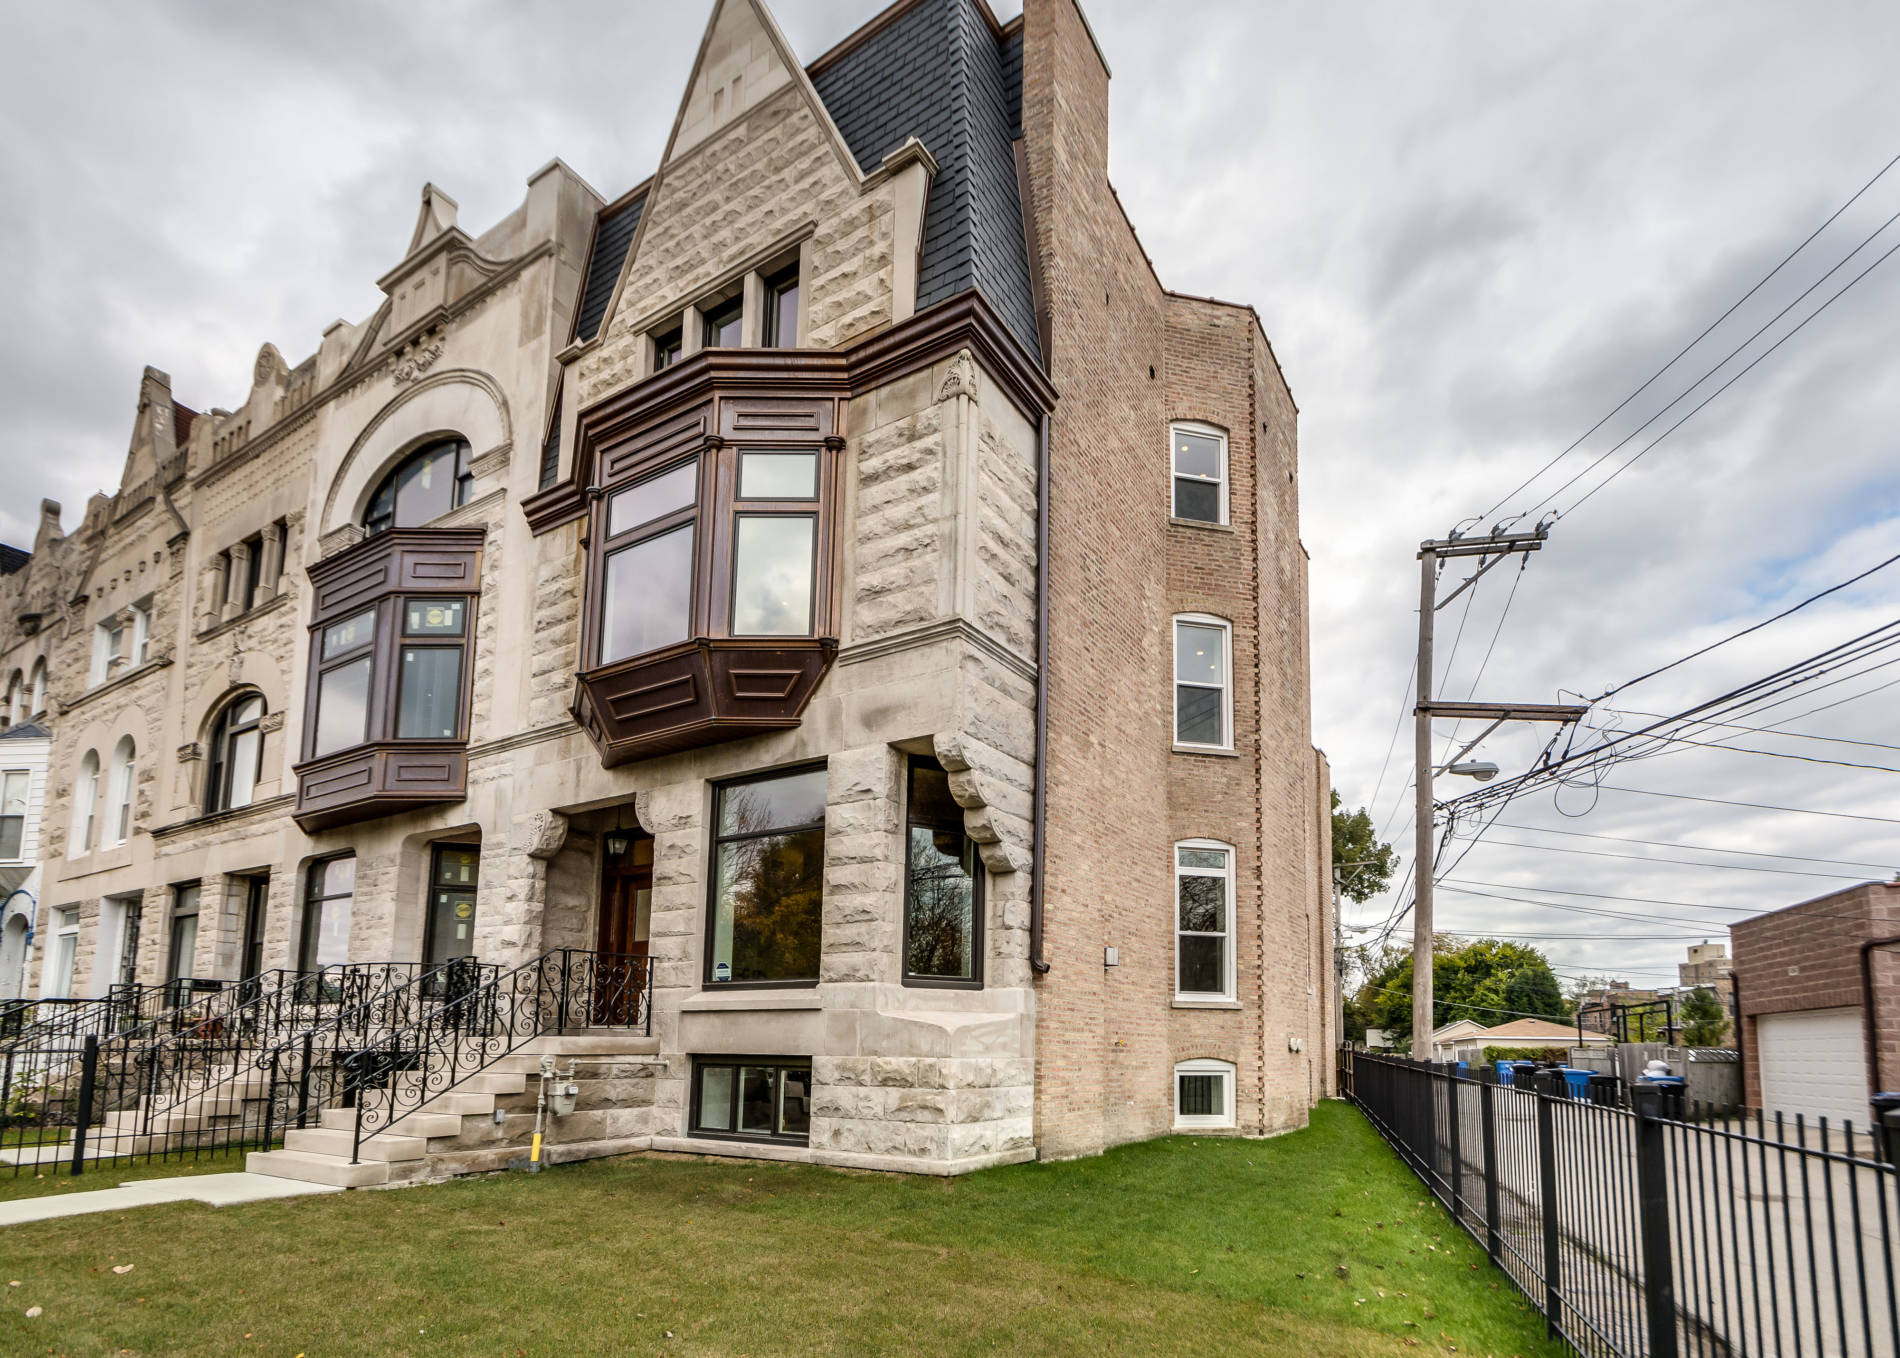 Chicago's Landmarks Commission Honors SCG Graystone Mansions